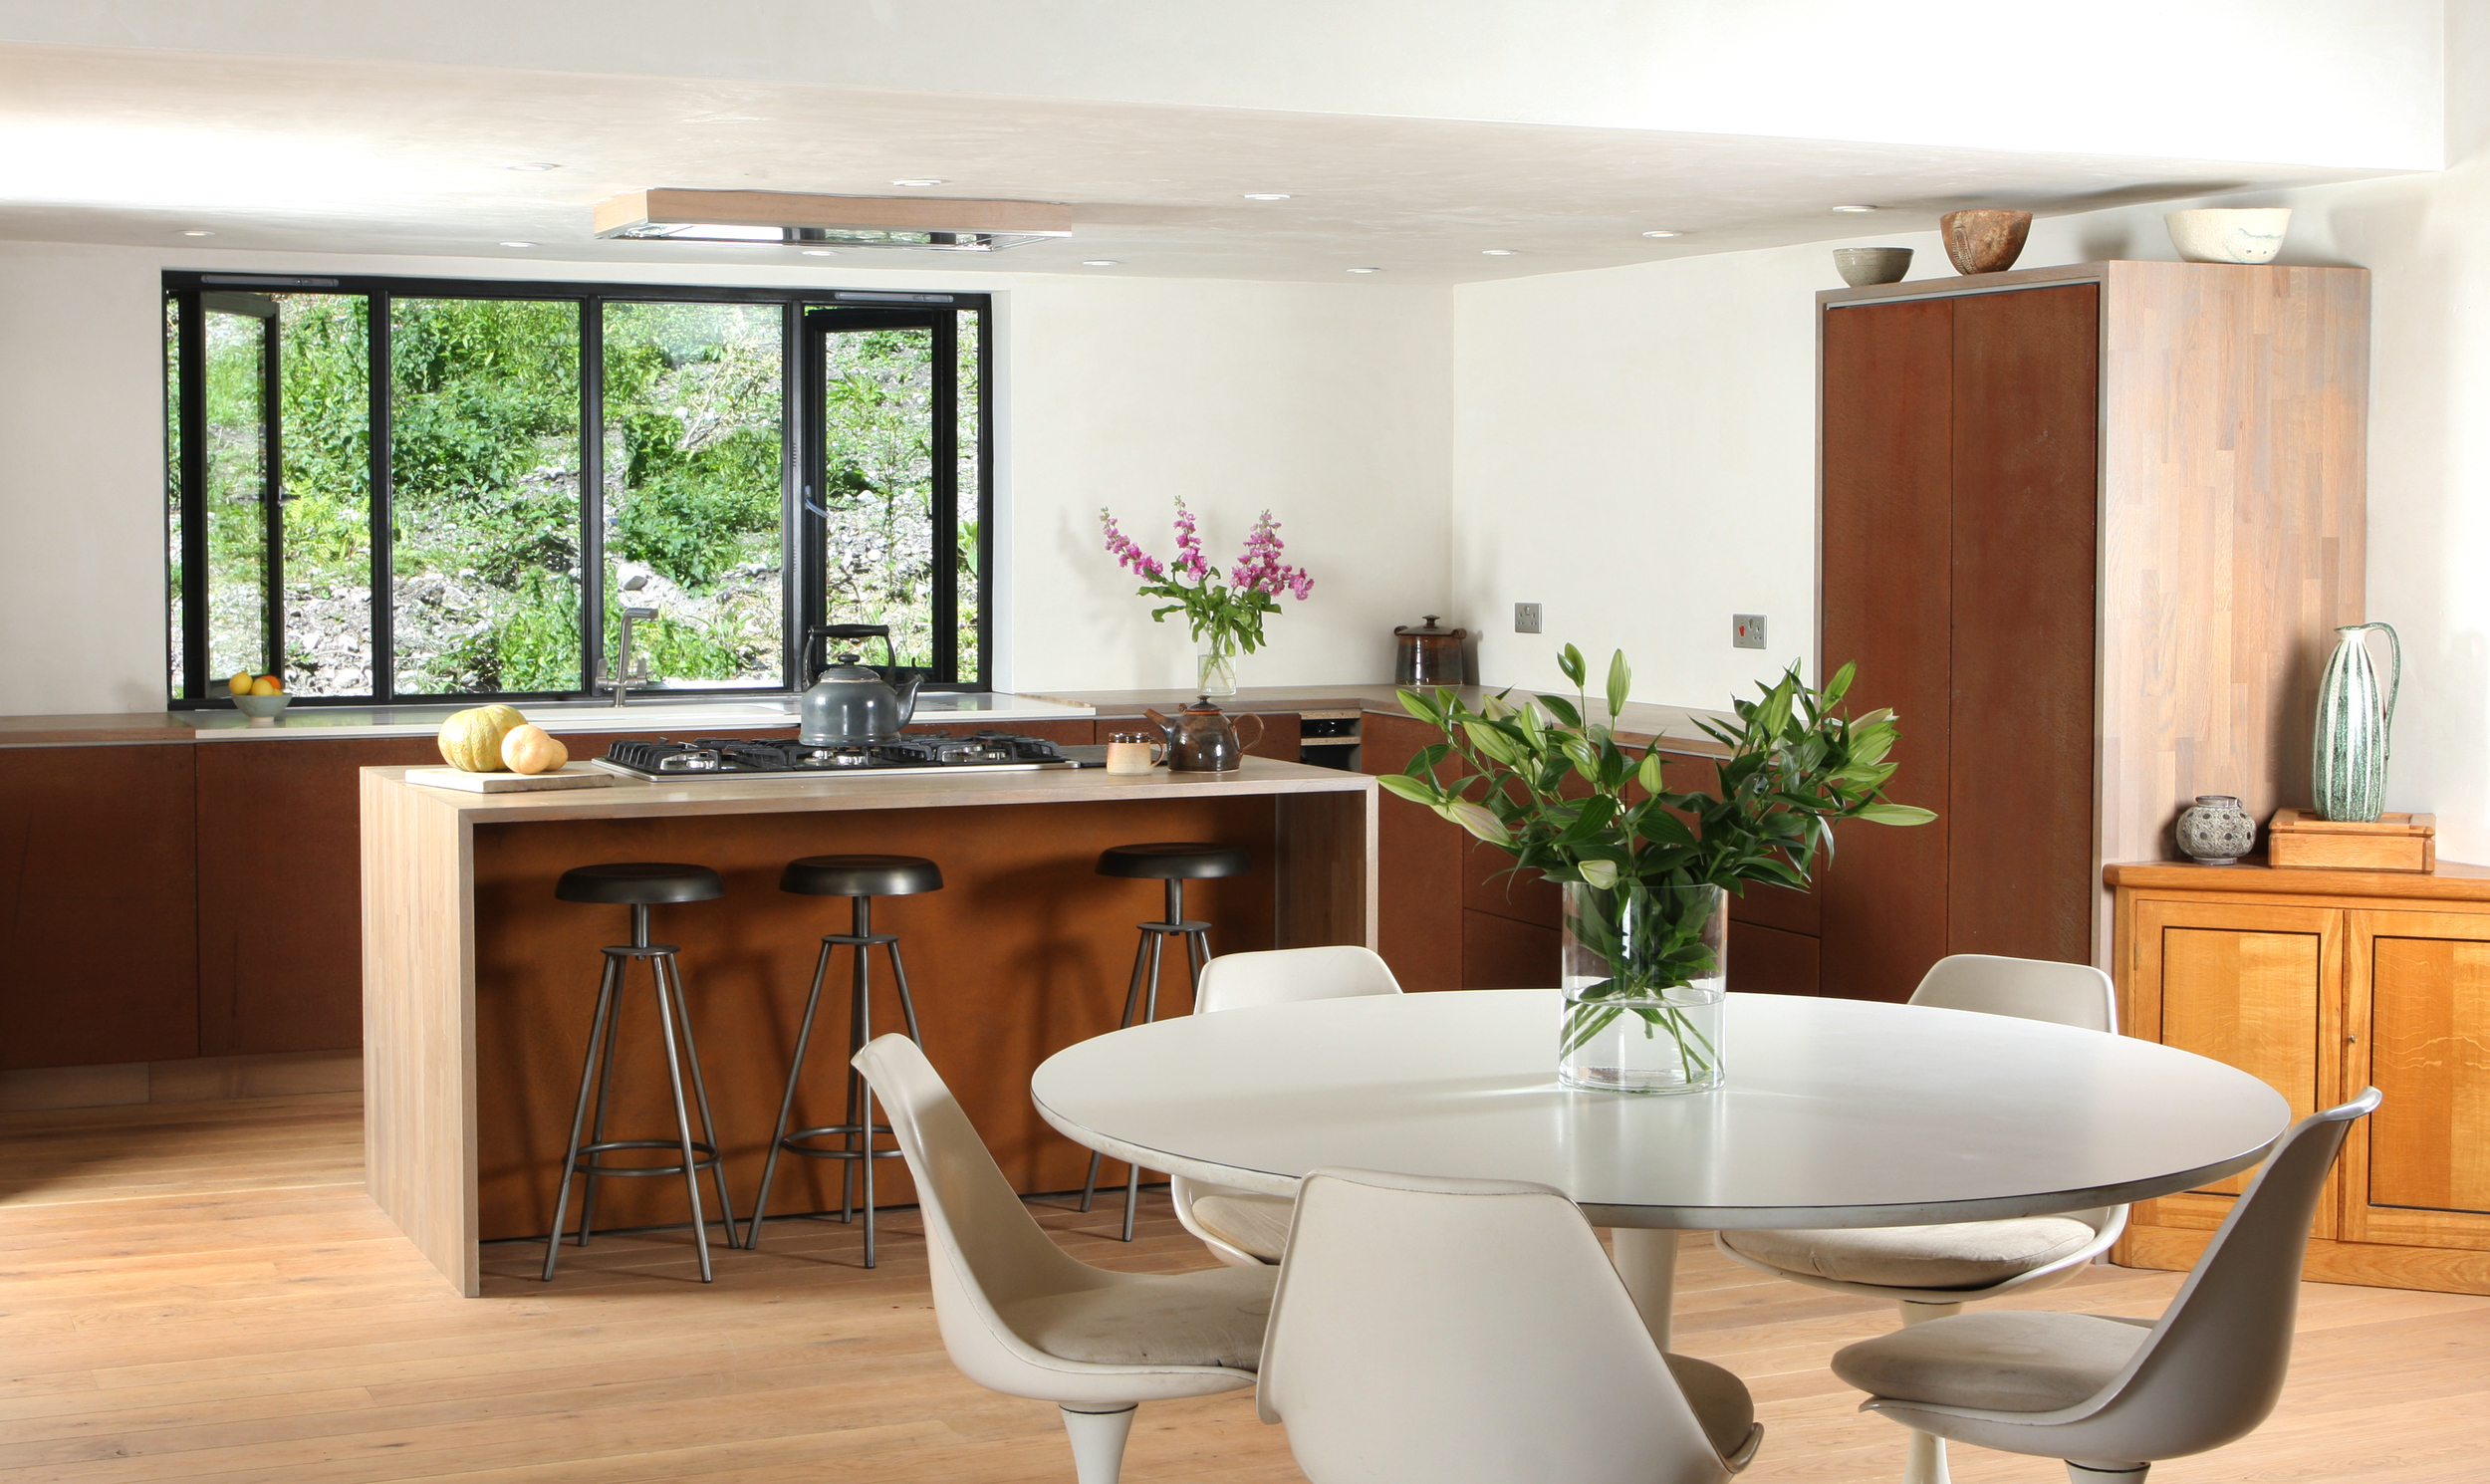 The bespoke kitchen, designed by  James Verner , is perfect to cook up a feast of  local produce.